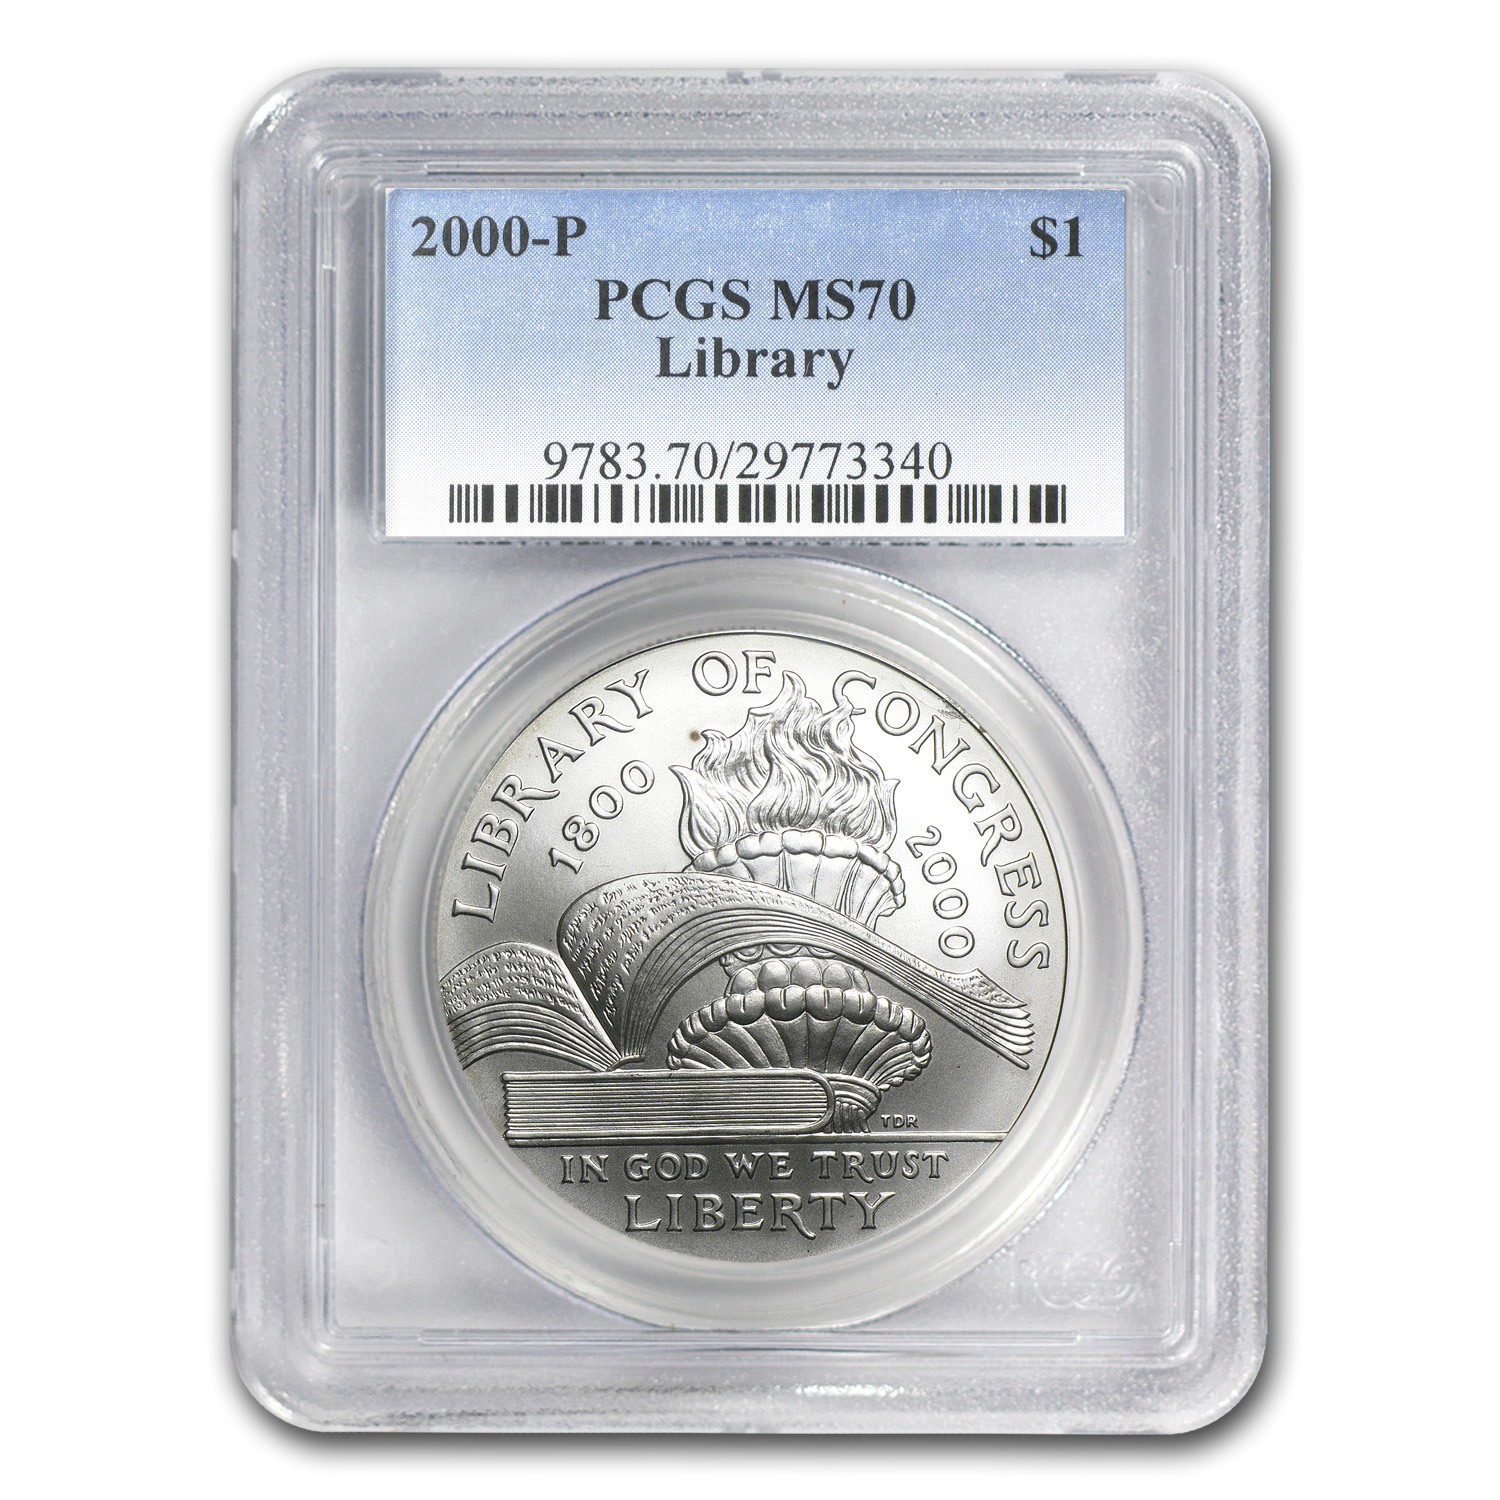 2000-P Library of Congress $1 Silver Commem MS-70 PCGS